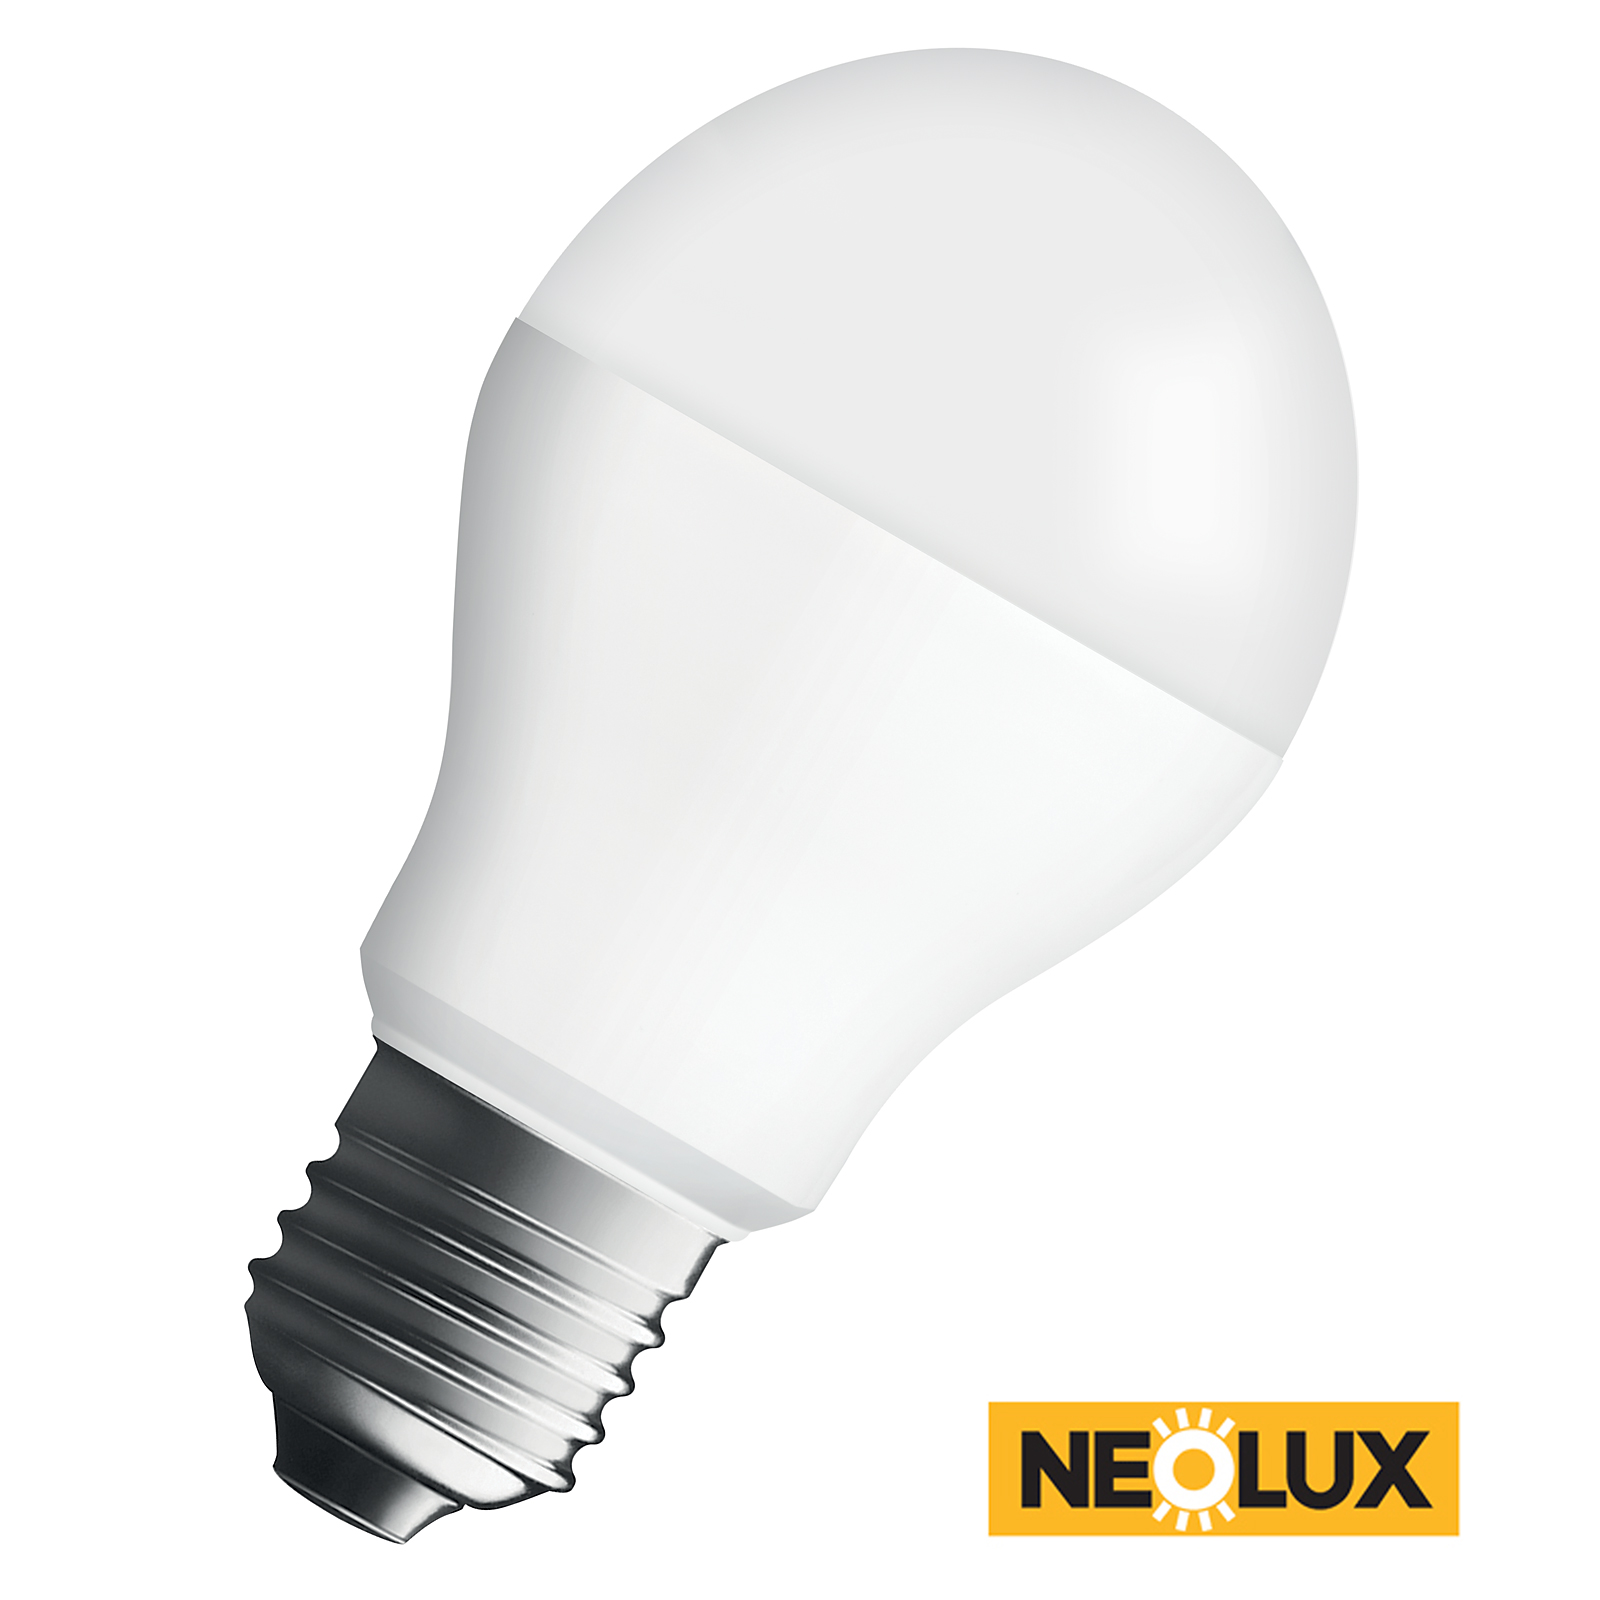 neolux led lampe e27 5 5w ersatz f r 40 watt 470 lumen warmwei ebay. Black Bedroom Furniture Sets. Home Design Ideas